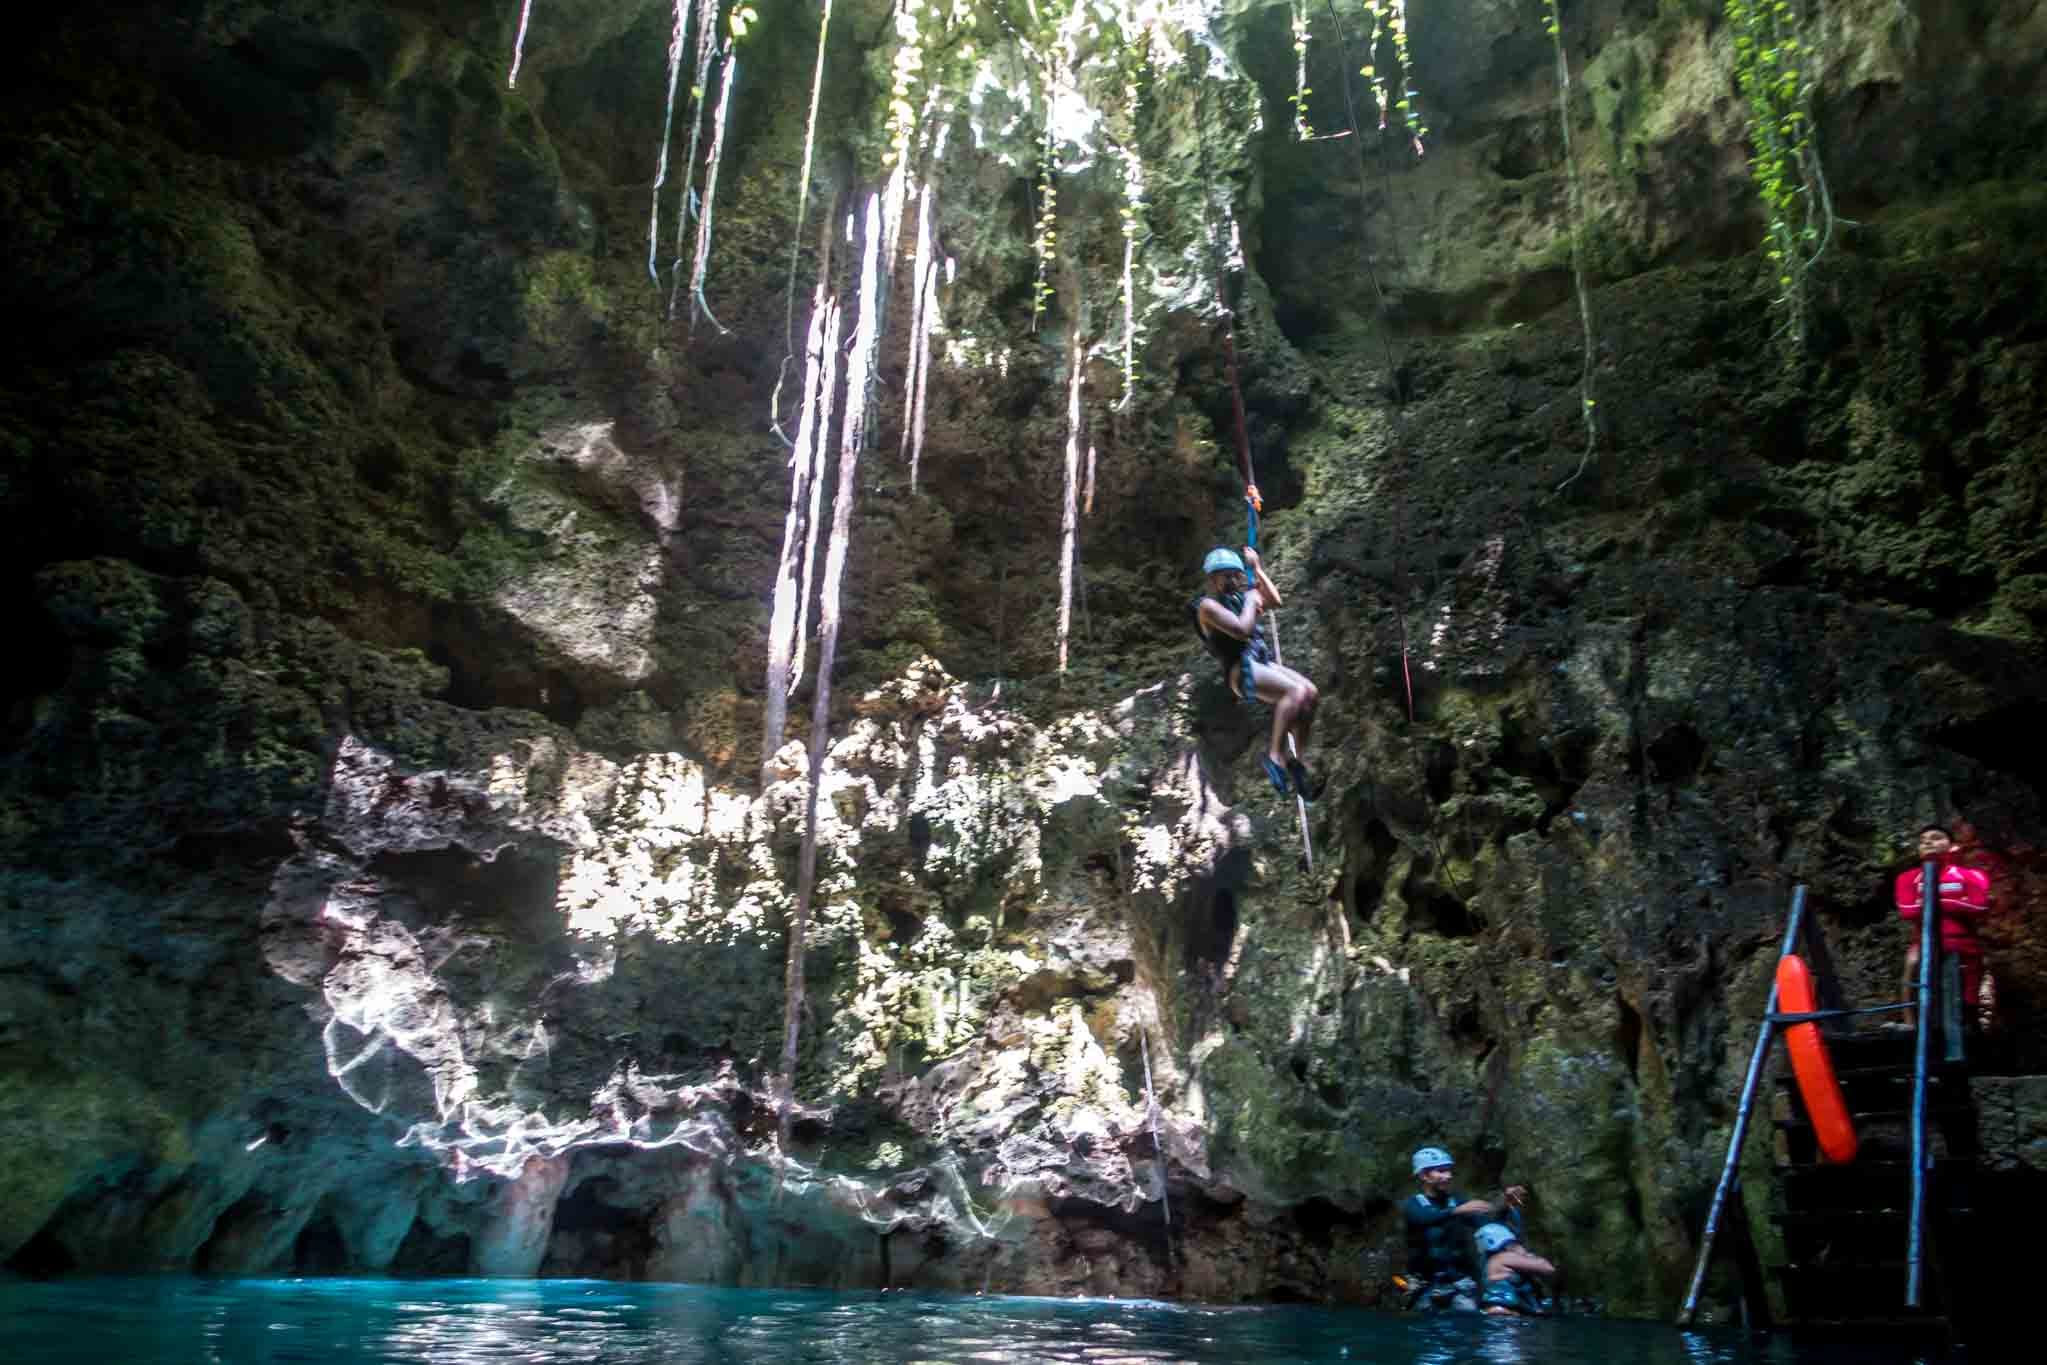 People rappelling into a cave cenote near Cancun